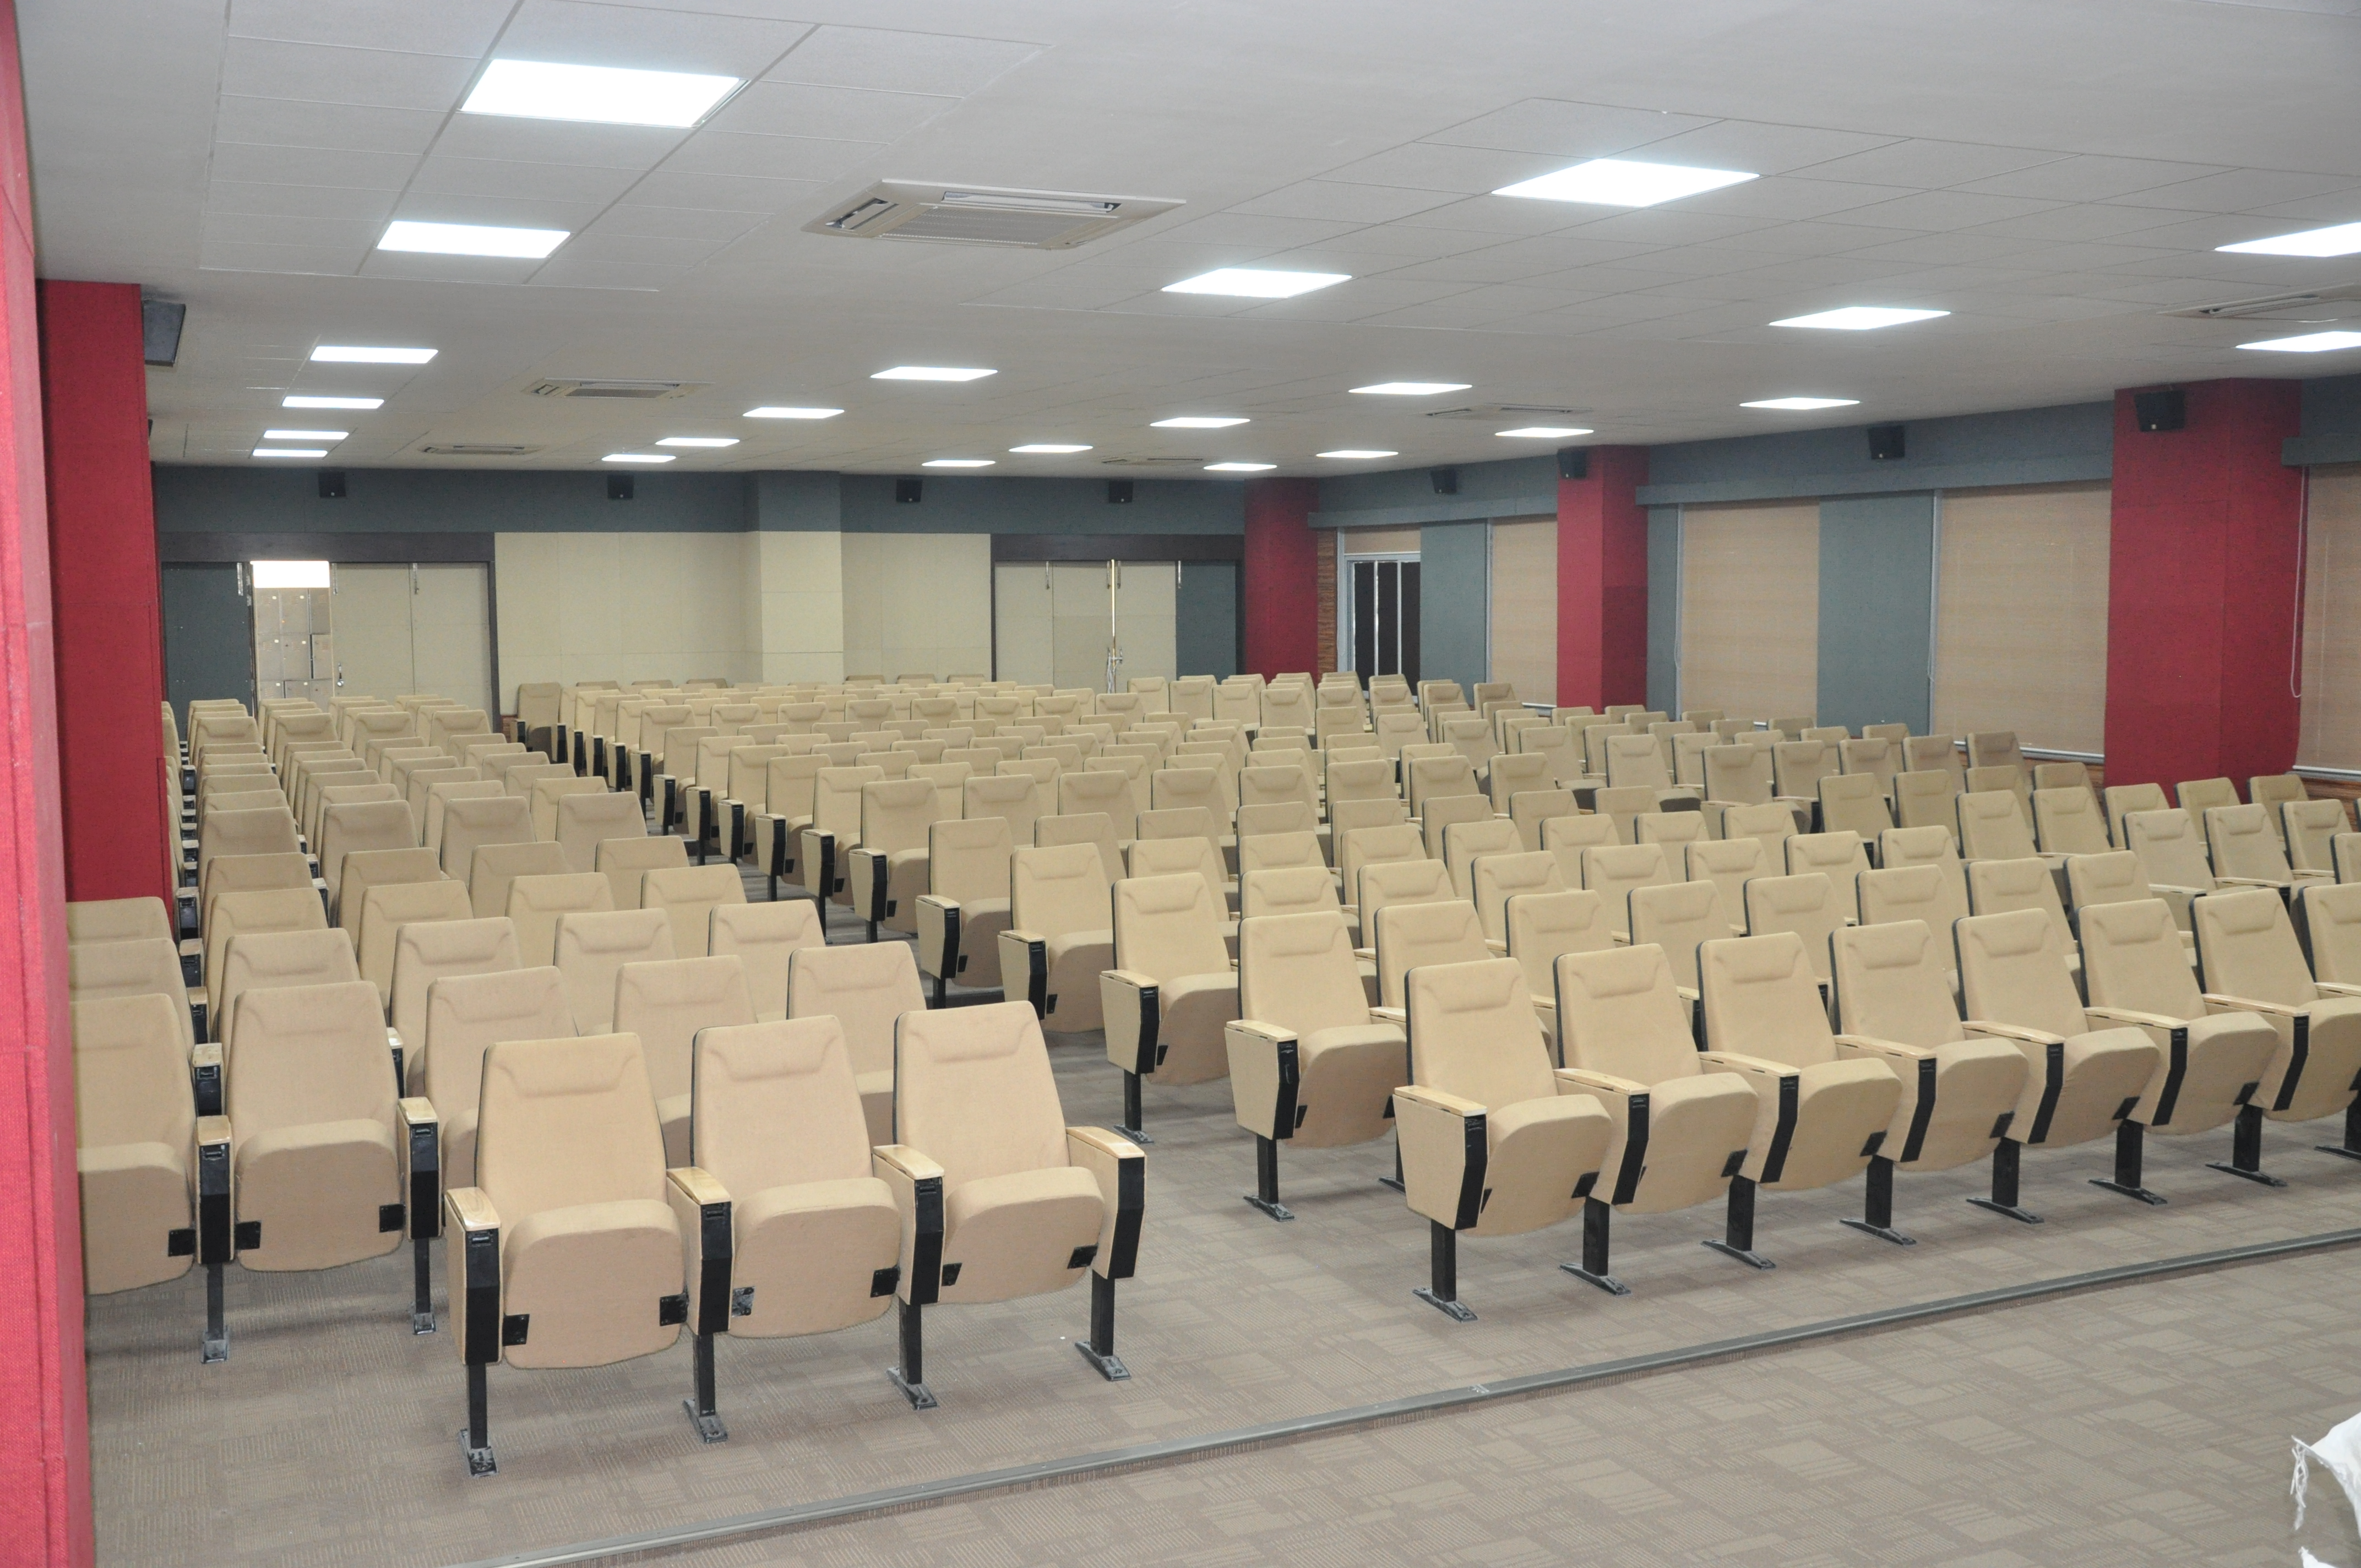 Mksss School Of Fashion Technology Pune Courses Fees Placements Ranking Admission 2020